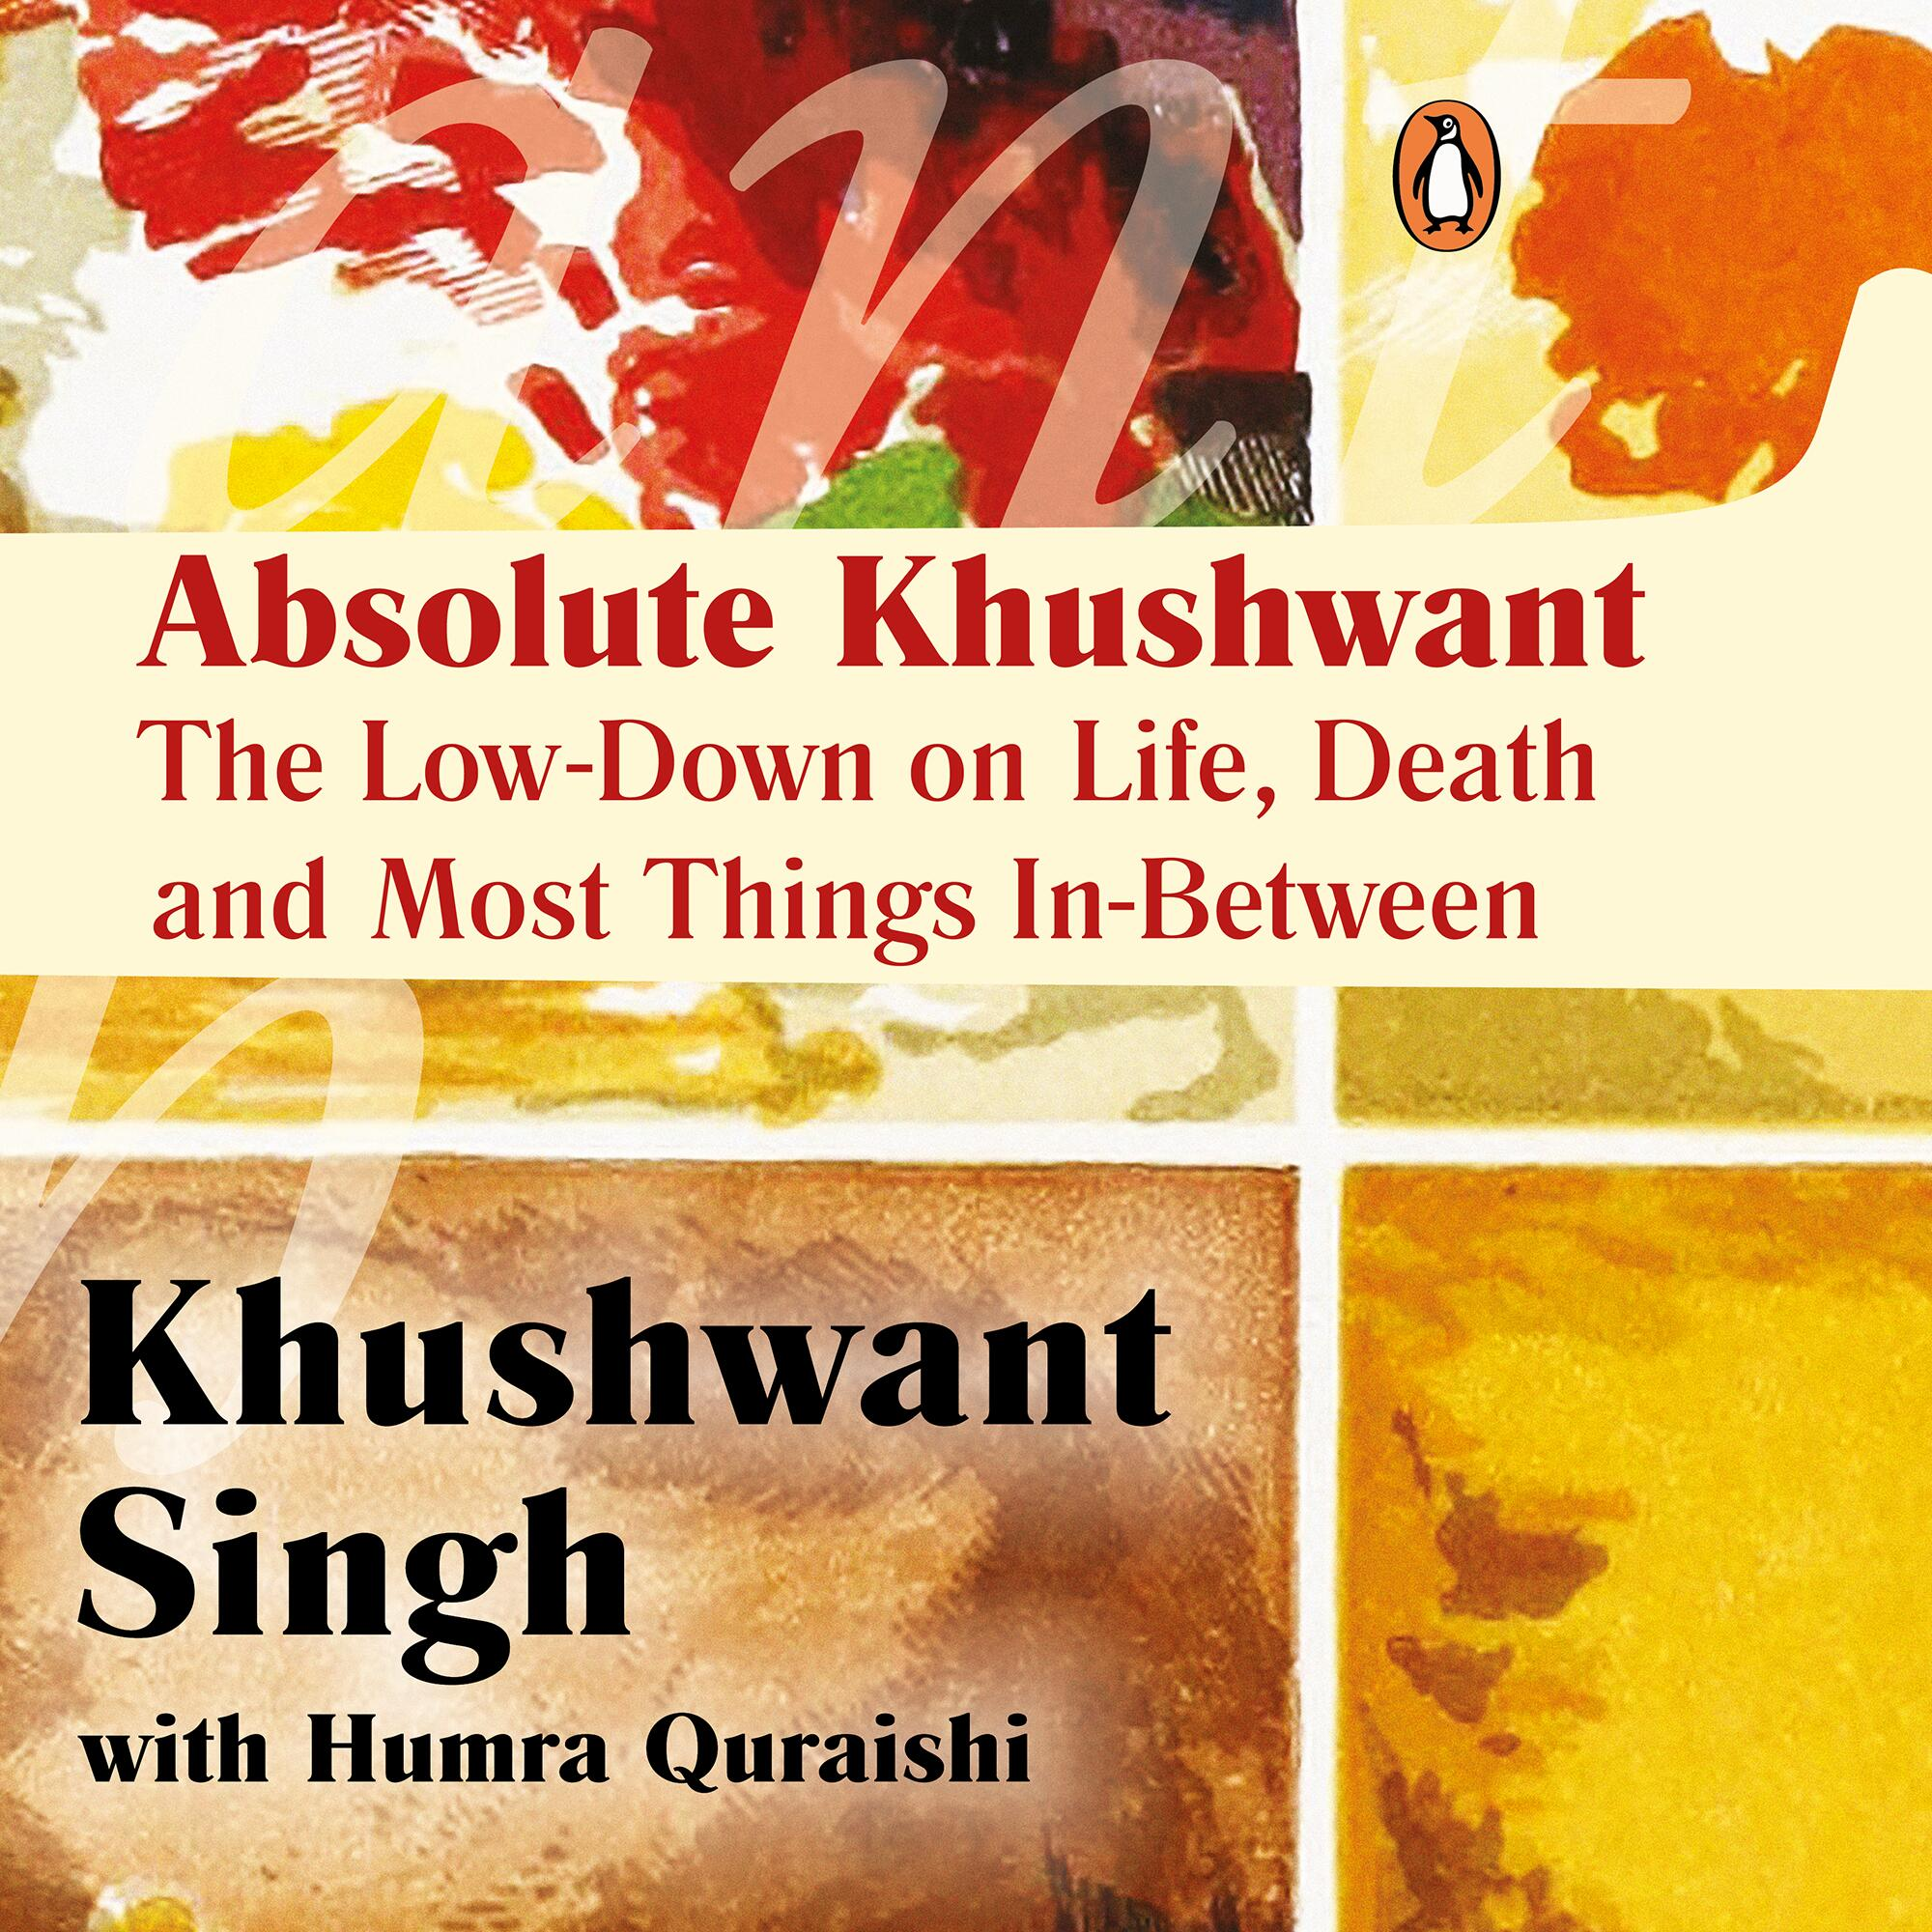 Absolute Khushwant